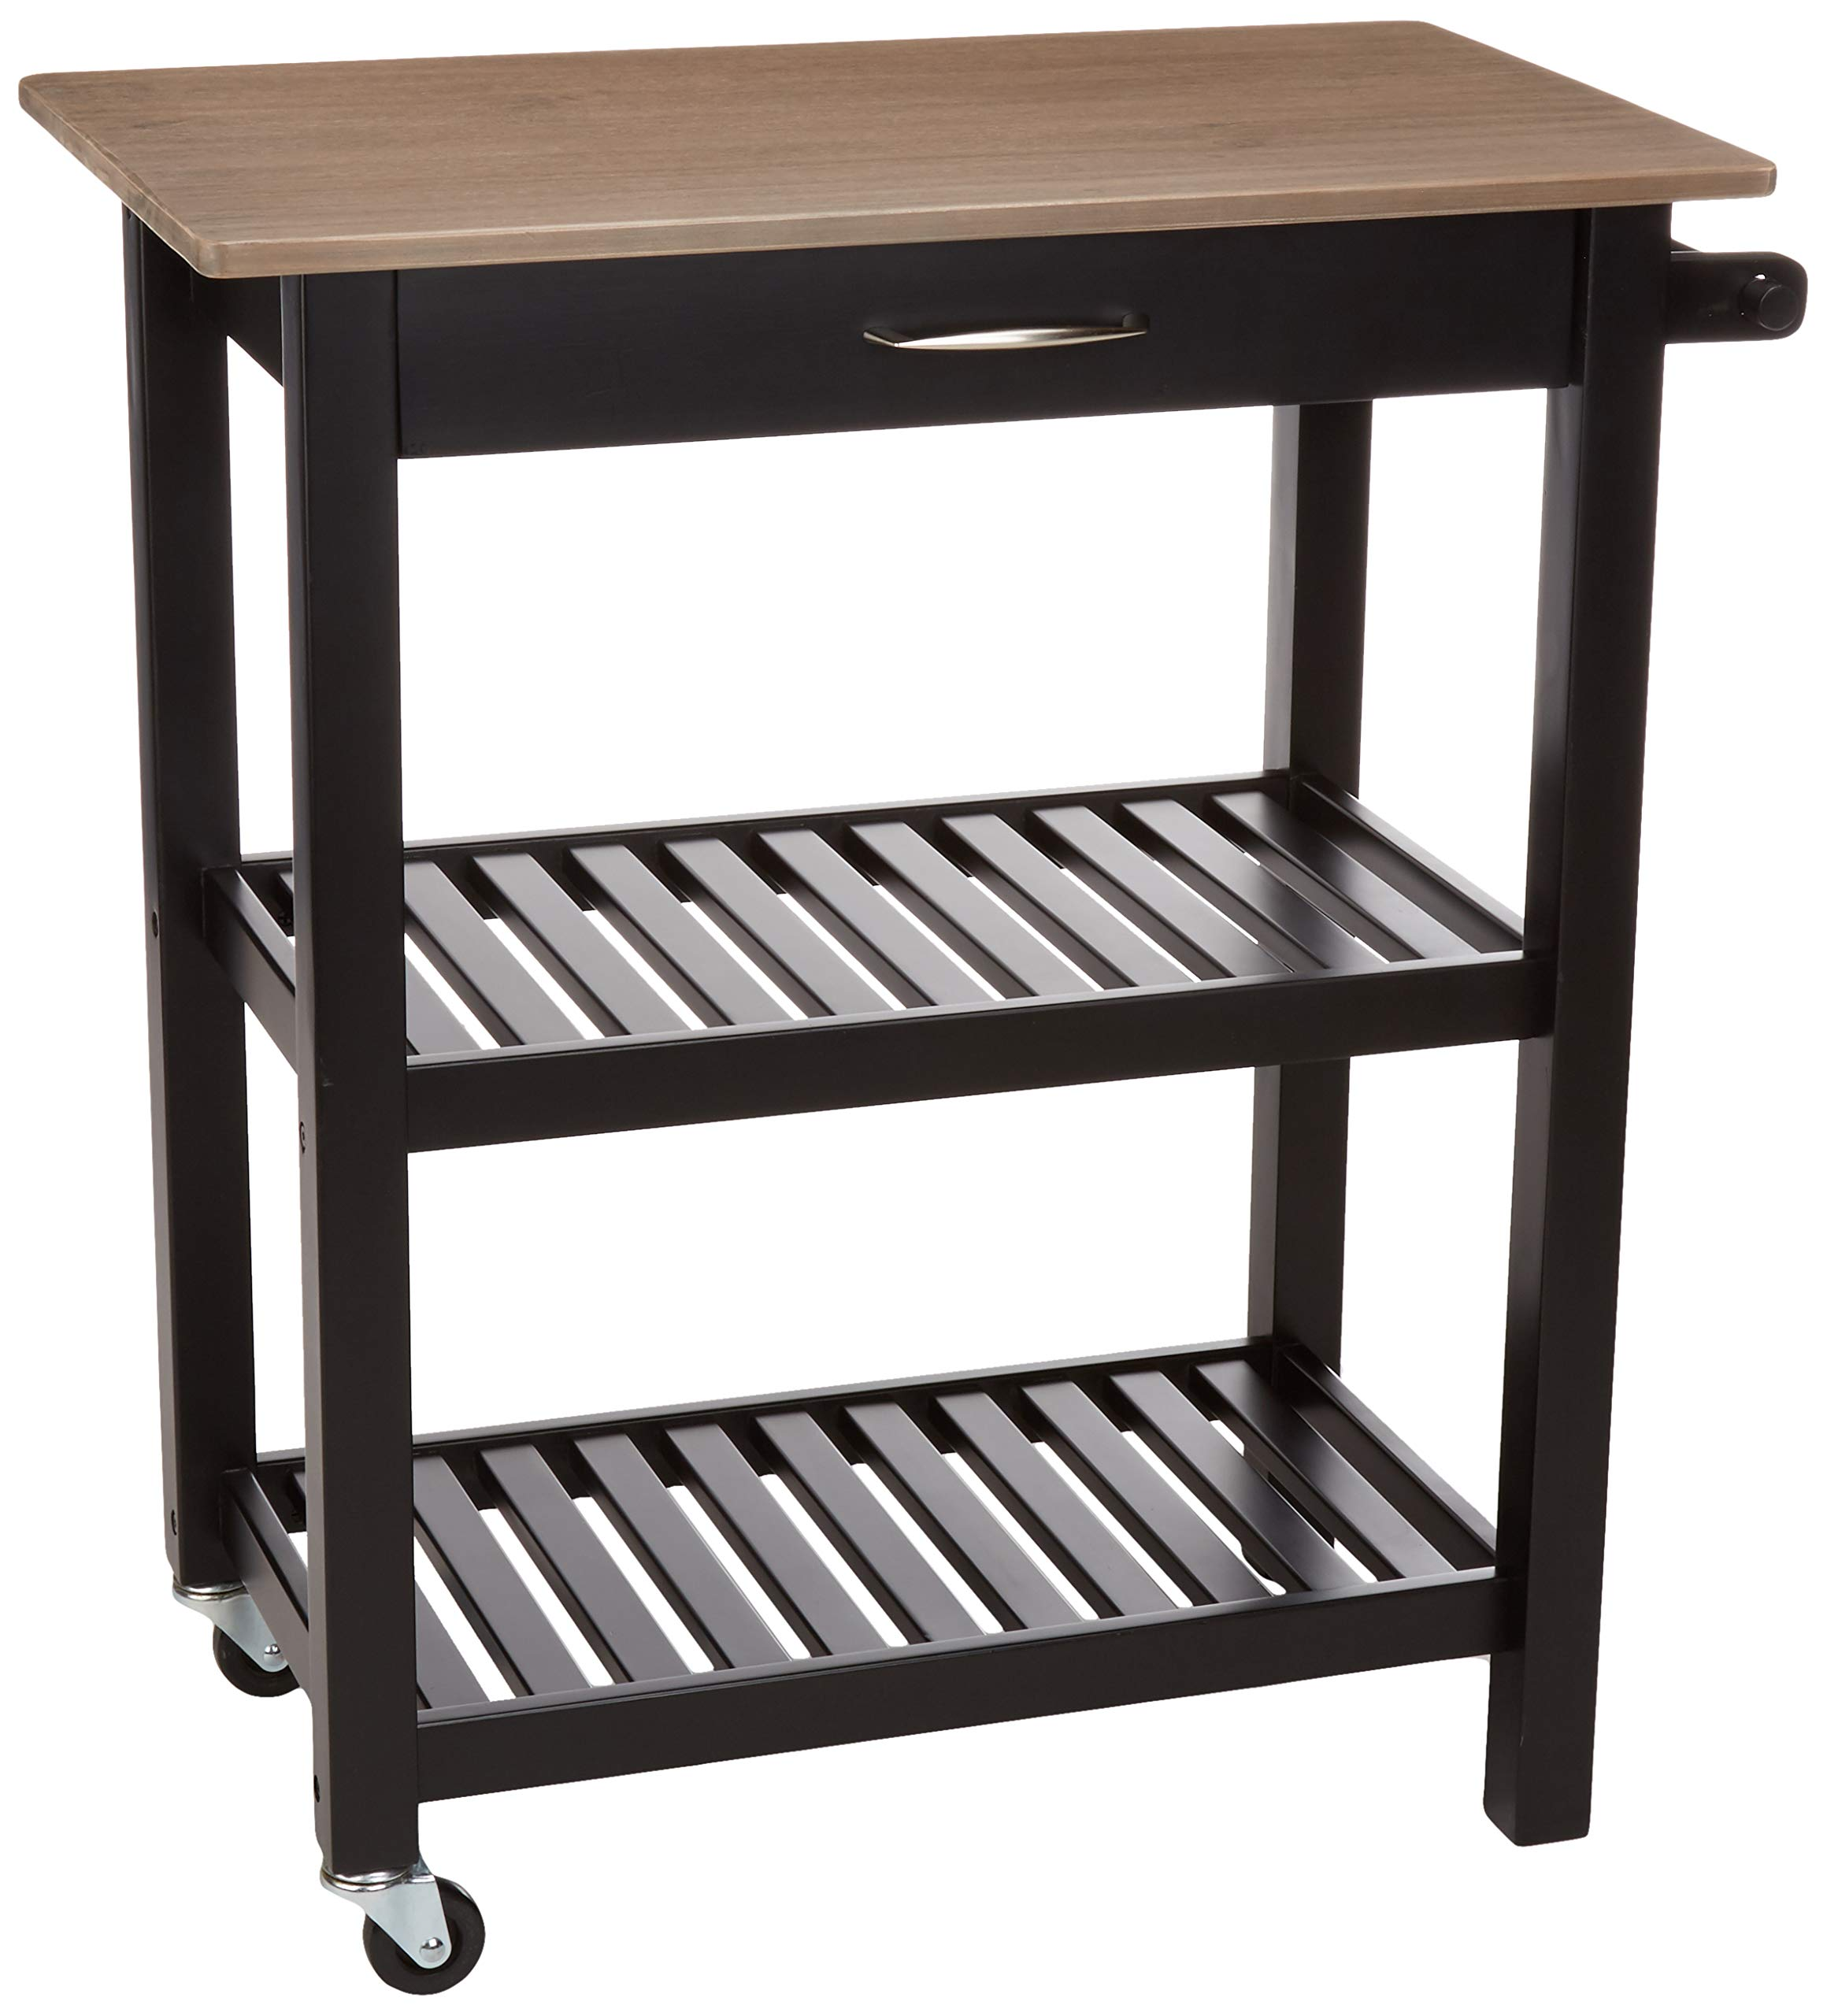 AmazonBasics Multifunction Rolling Kitchen Cart Island with Open Shelves - Reclaimed Grey and Black by AmazonBasics